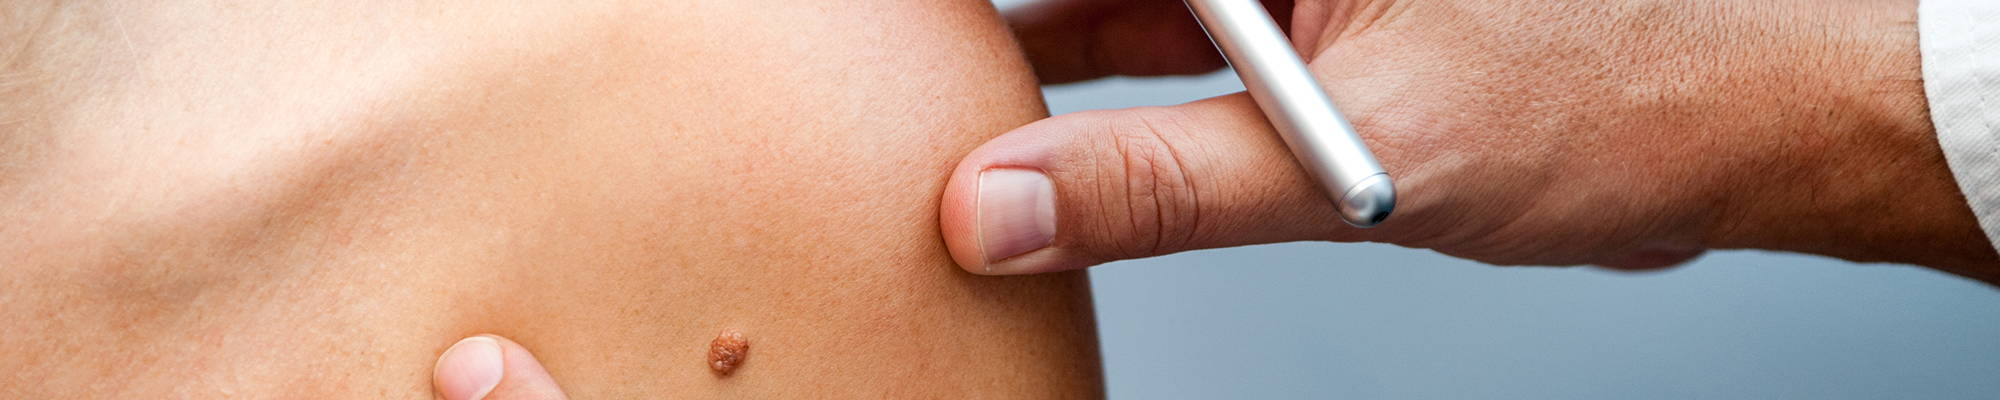 Do You Know The Warning Signs Of Skin Cancer Universal Companies